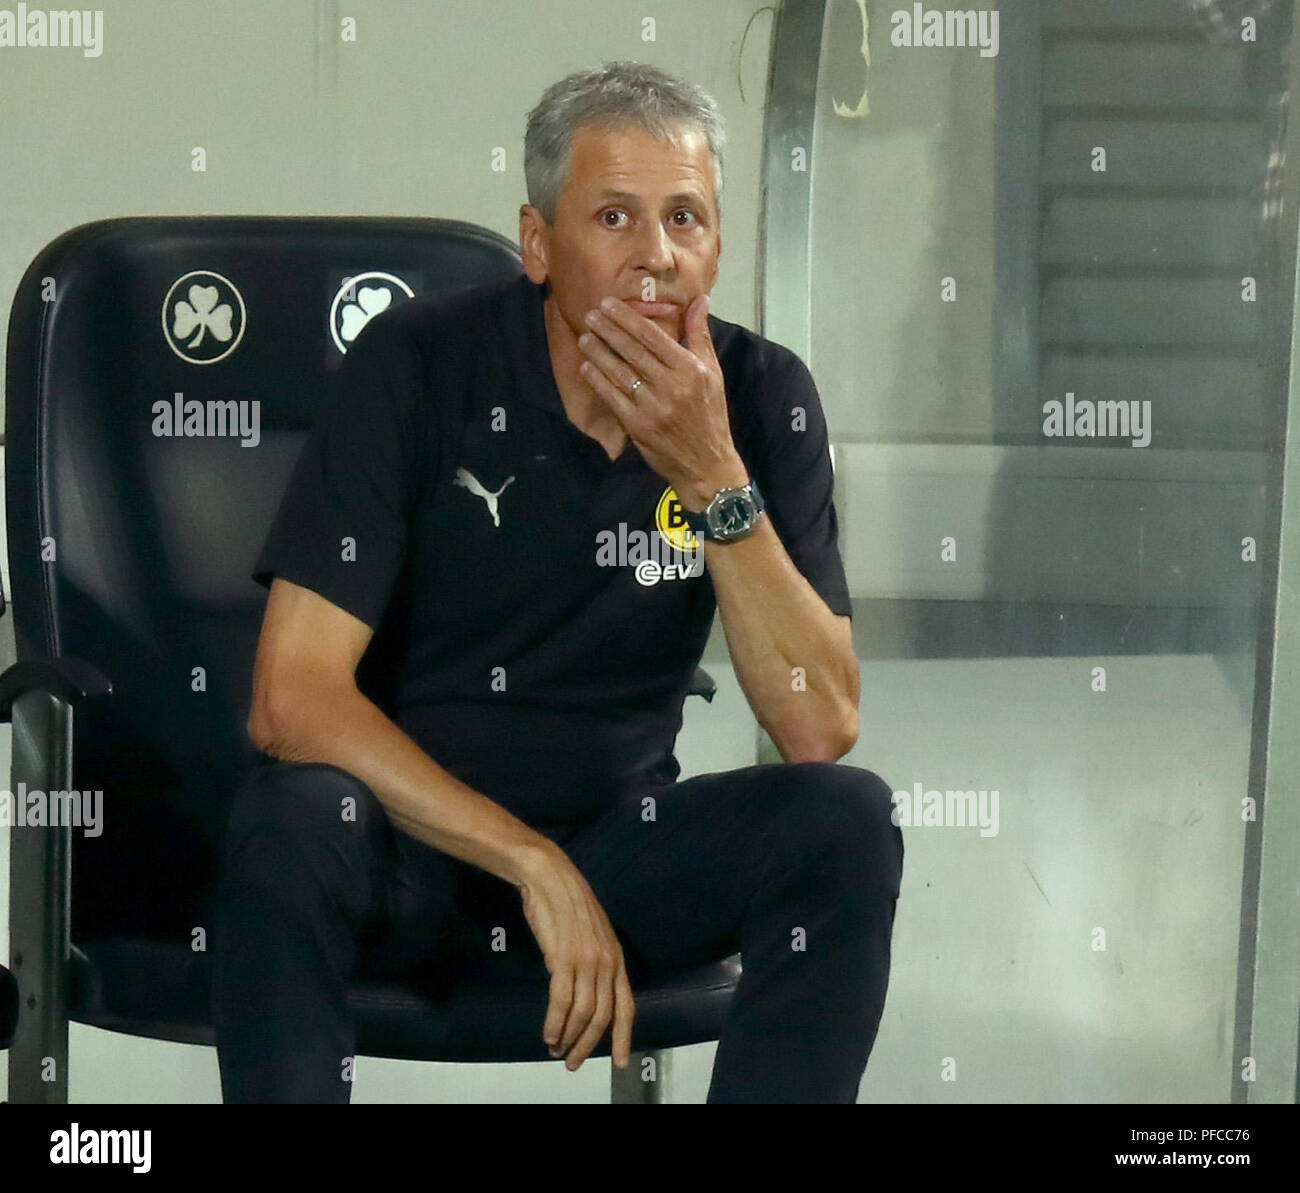 20.08.2018, Bavaria, Fürth: Football: DFB Cup, SpVgg Greuther Fürth - Borussia Dortmund, 1st round at Sportpark Ronhof Thomas Sommer. Dortmund coach Lucien Favre gestures on the sideline. (Important note: The DFB prohibits the use of sequence images on the Internet and in online media during the game (including half-time). vesting period! The DFB allows the publication and further use of the images on mobile devices (especially MMS) and via DVB-H and DMB only after the end of the game. Photo: Daniel Karmann/dpa - Stock Image